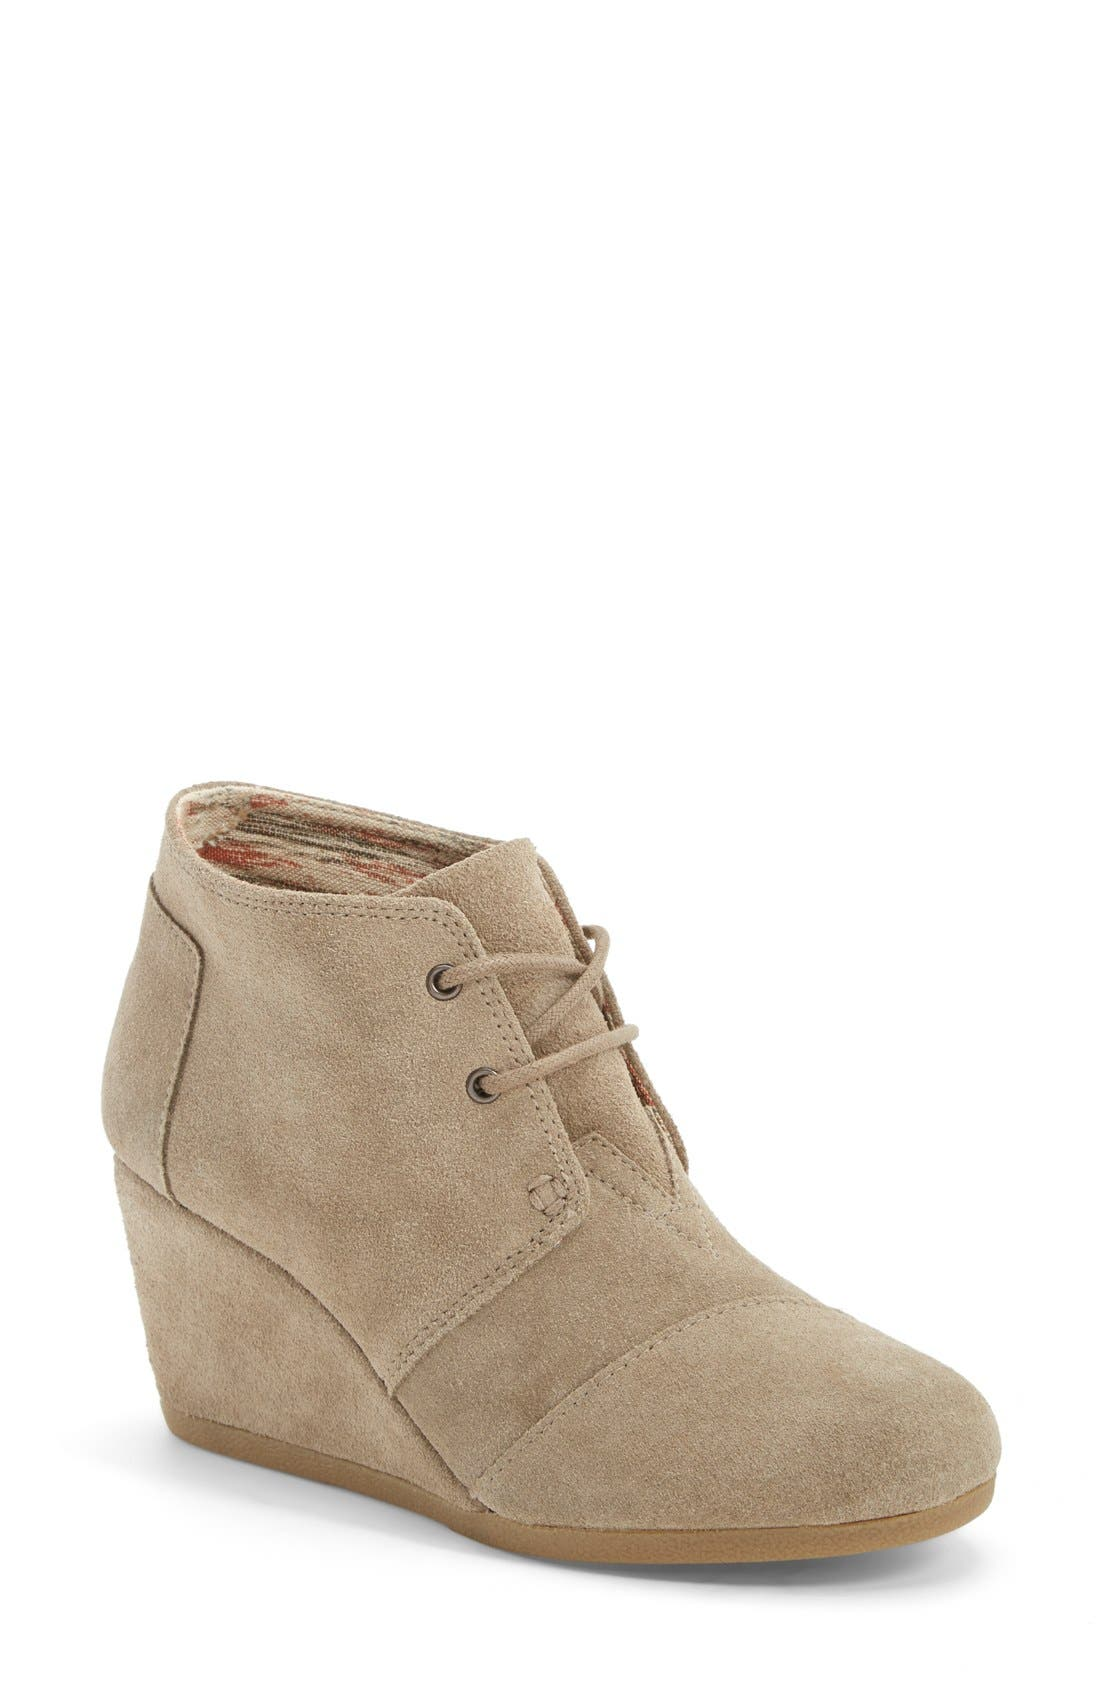 'Desert' Wedge Bootie,                         Main,                         color, Taupe Suede